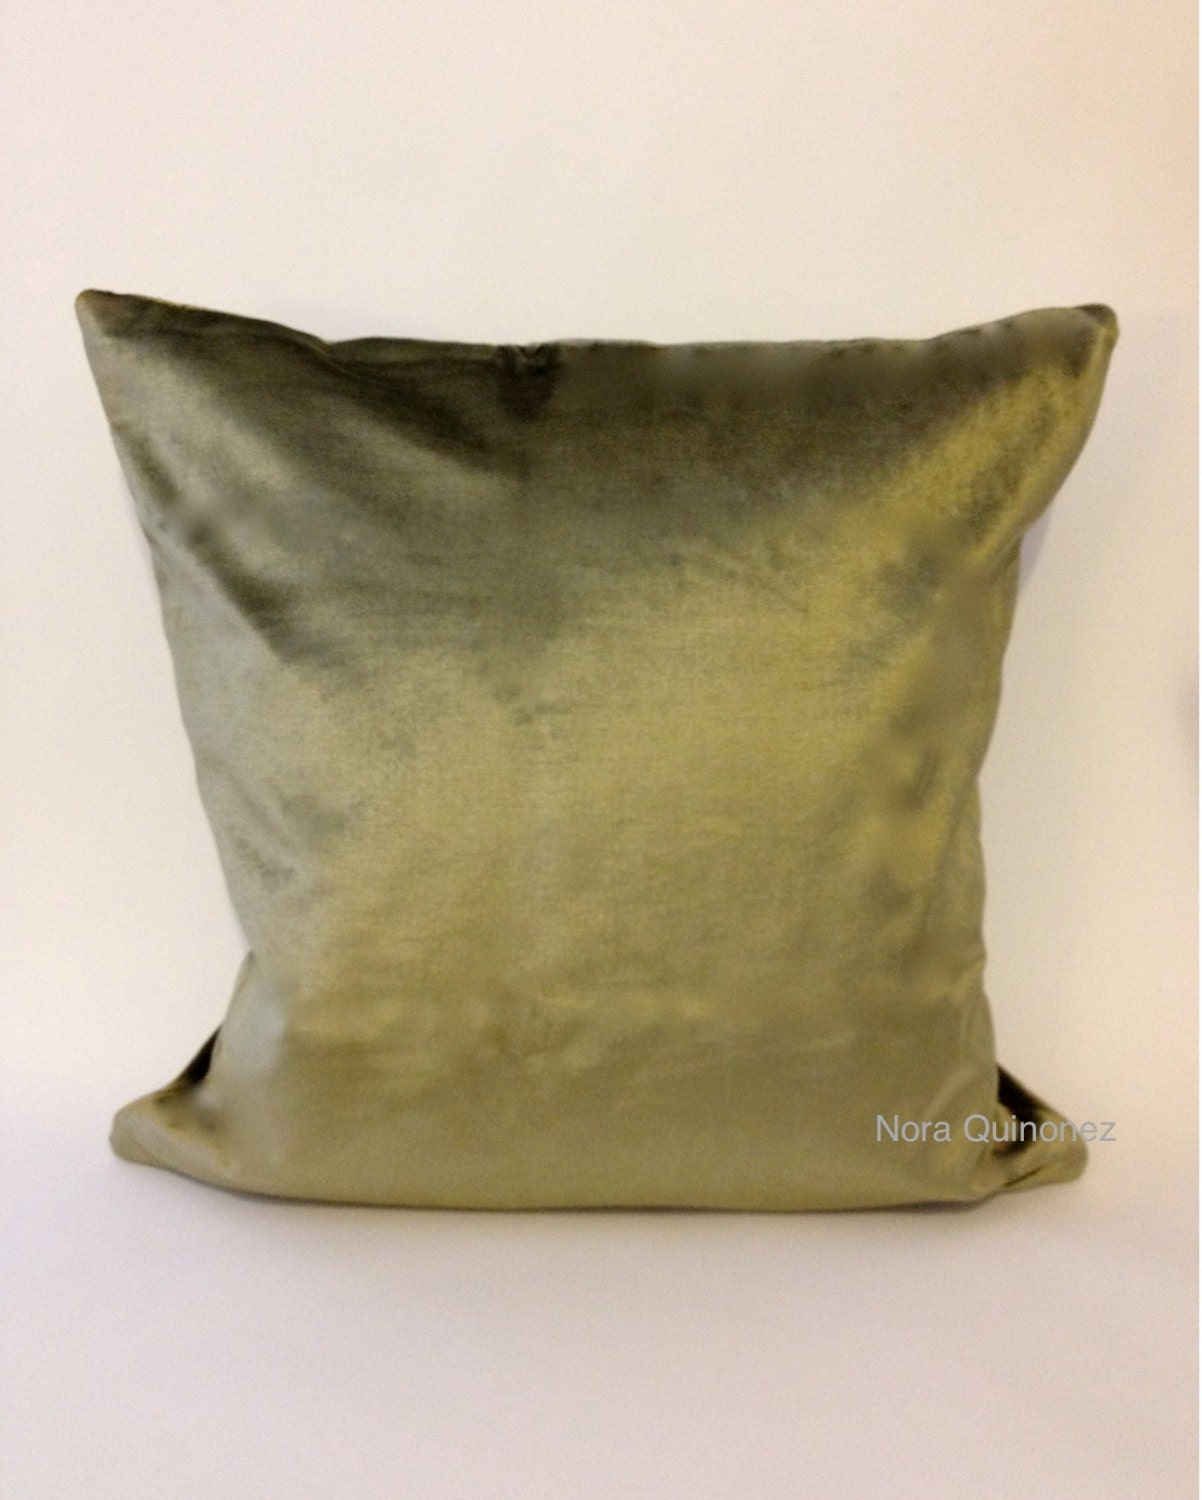 Olive Green Decorative Pillow : 18x18 Olive Green Decorative Pillow Cover Medium by NoraQuinonez